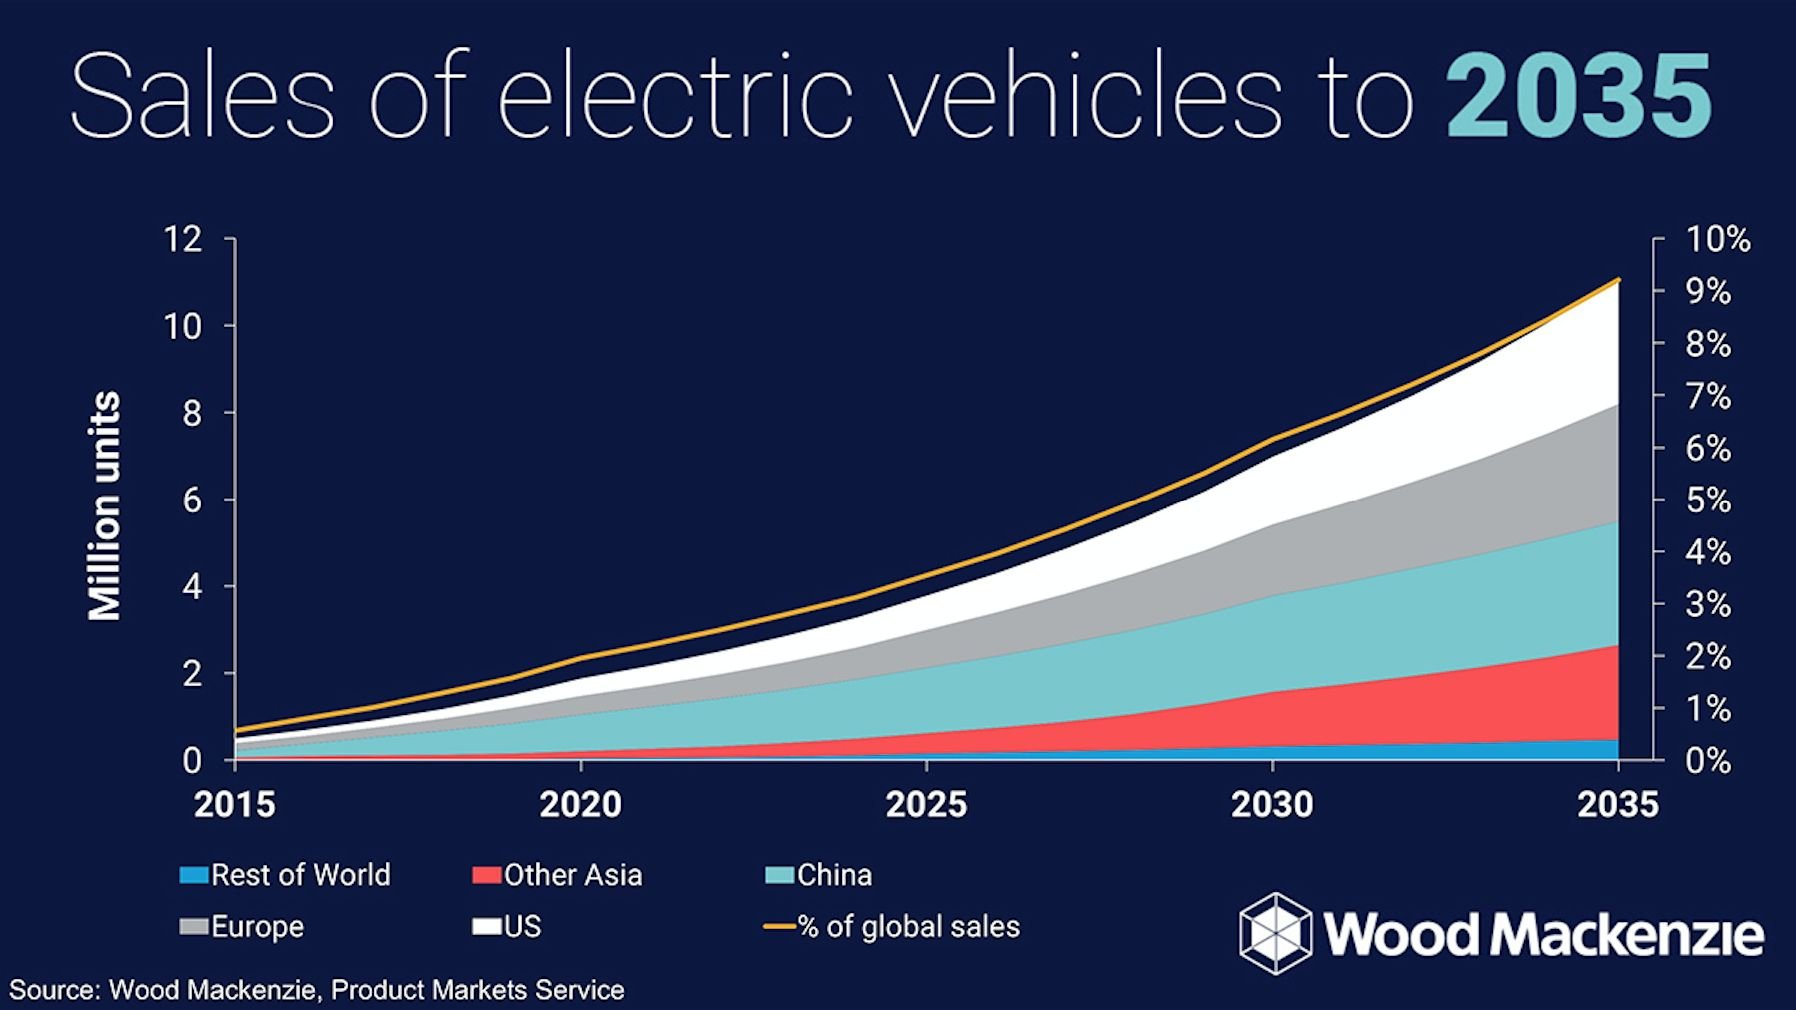 Everyone Is Revising Their Electric Vehicle Forecasts Upward